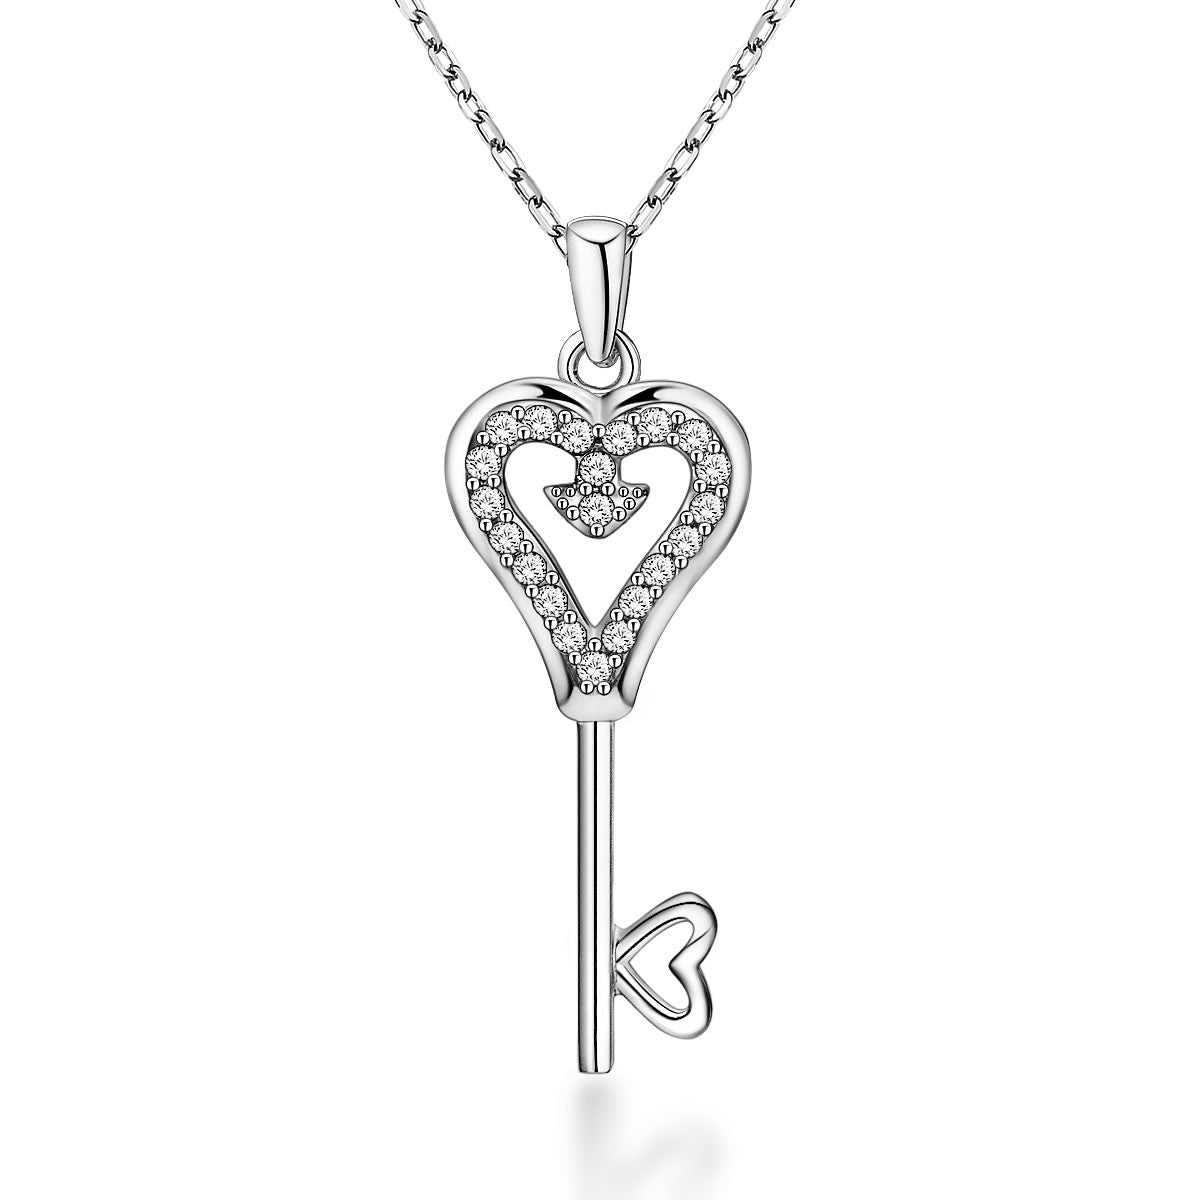 Unique Heart-shaped Key Design 925 Sterling Silver Pendant Necklace E061751001